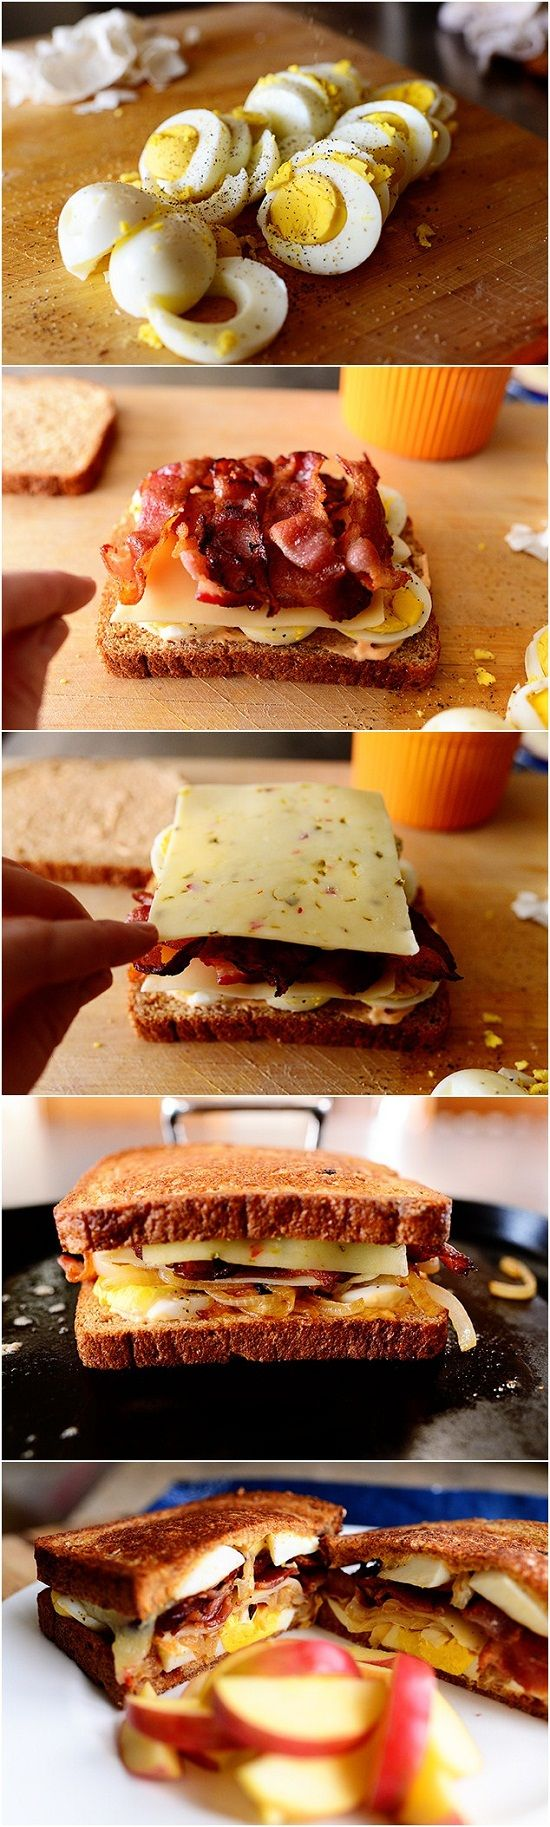 Best Recipes, #13 Ultimate Grilled Cheese Sandwich